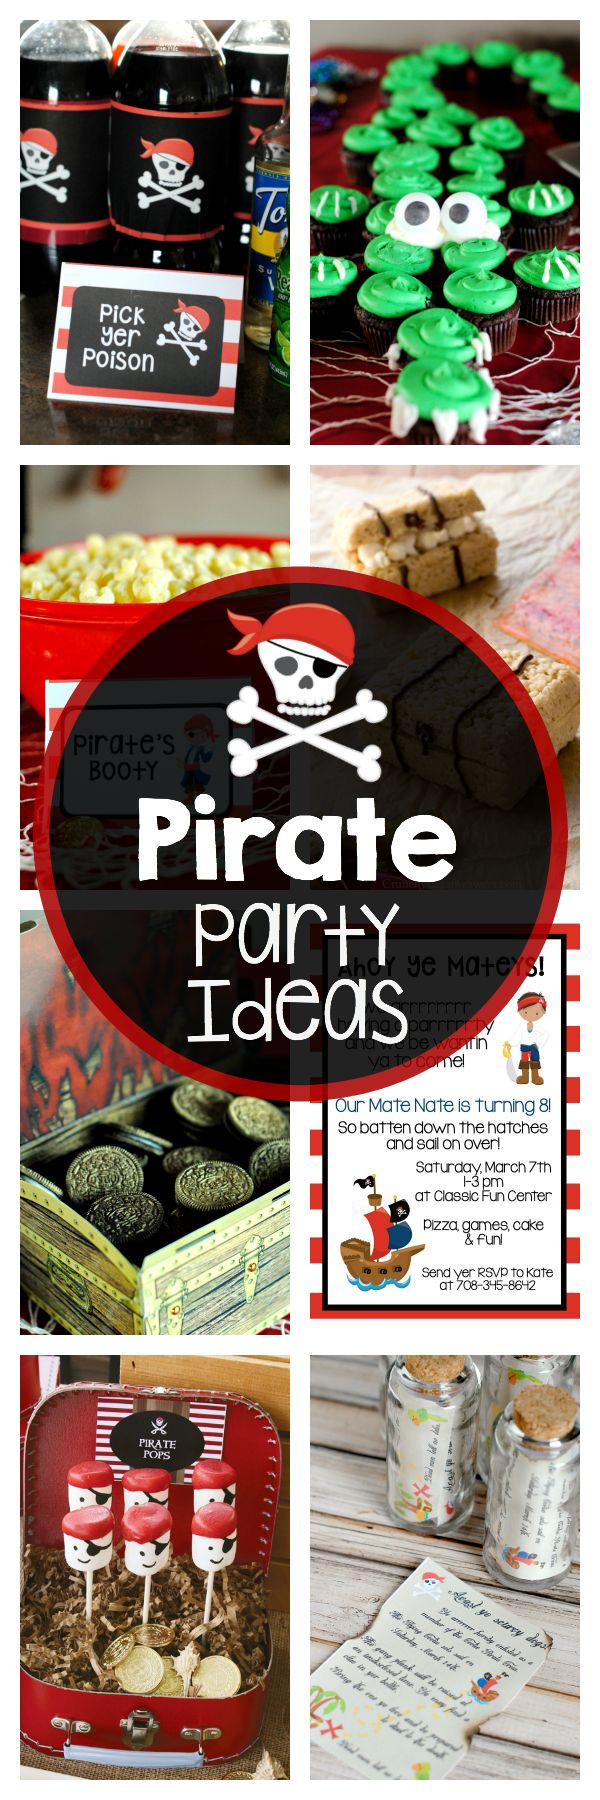 Tons of Pirate Party Ideas from Crazy Little Projects